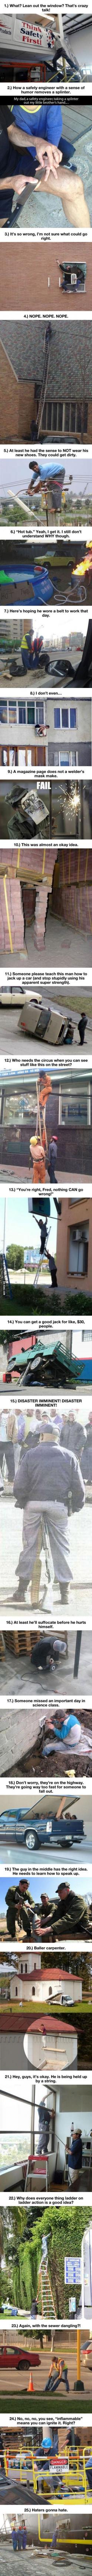 These 25 People Are About To Feel Serious Pain. But They Sorta Have It Coming, LOL.: Funny Things, Funny Accidents, Safety Fails, Humor, 25 People, Safety First, Pinterest Fail, Stupid People